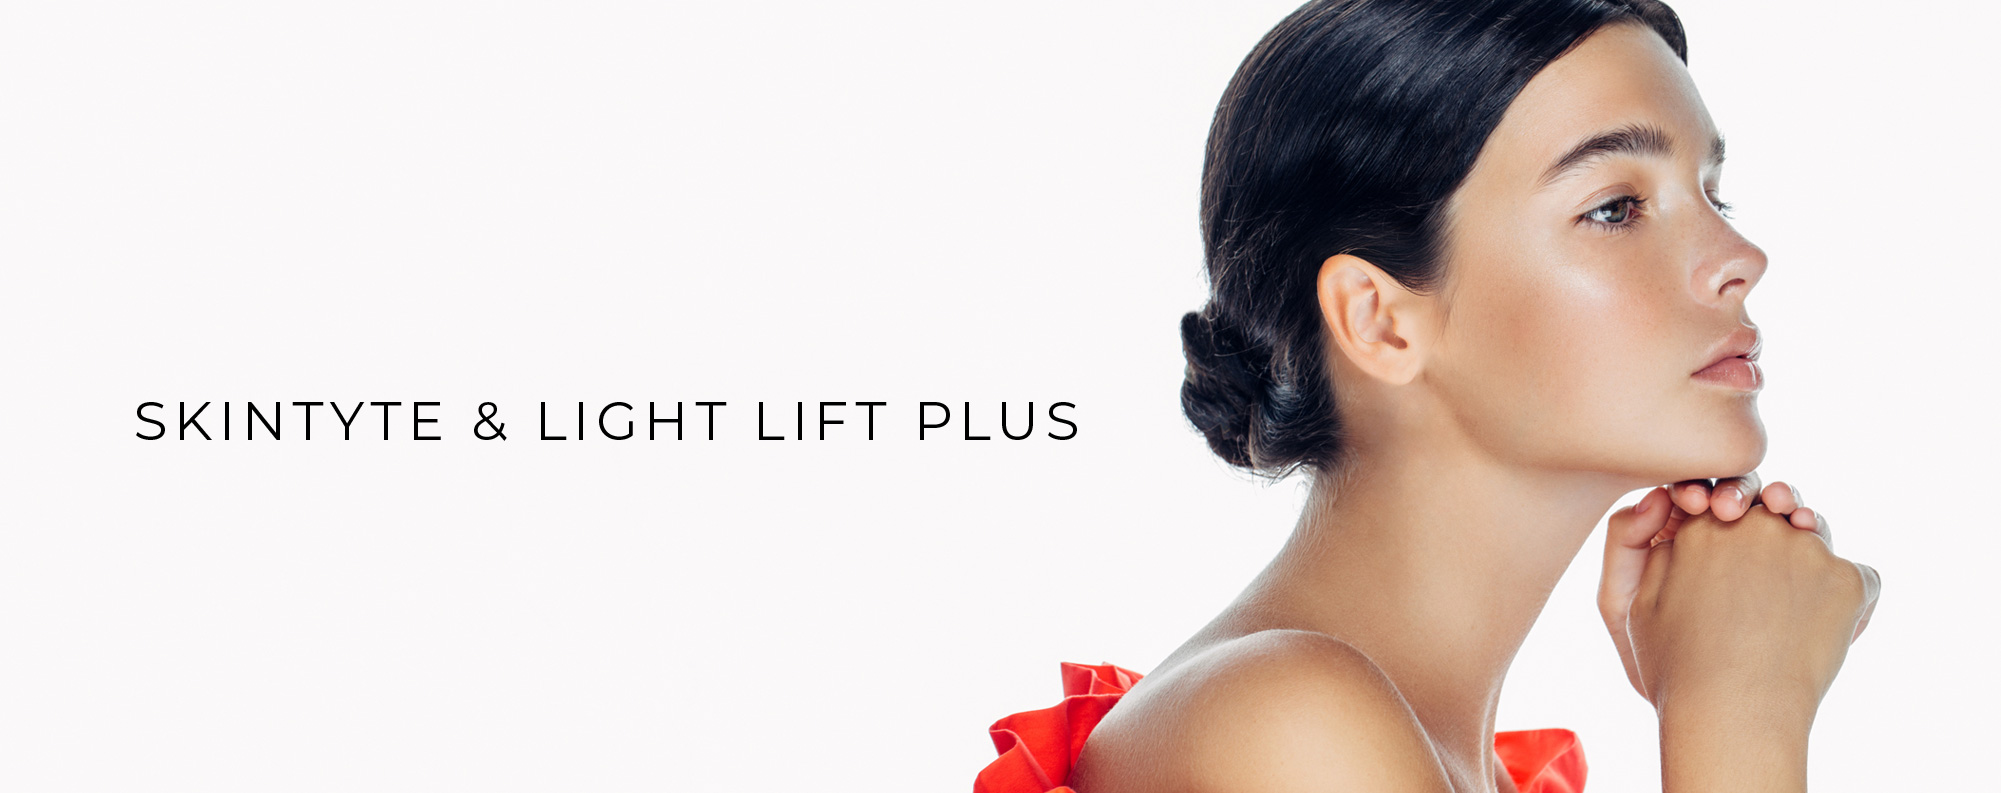 SkinTyte Light Lift Plus